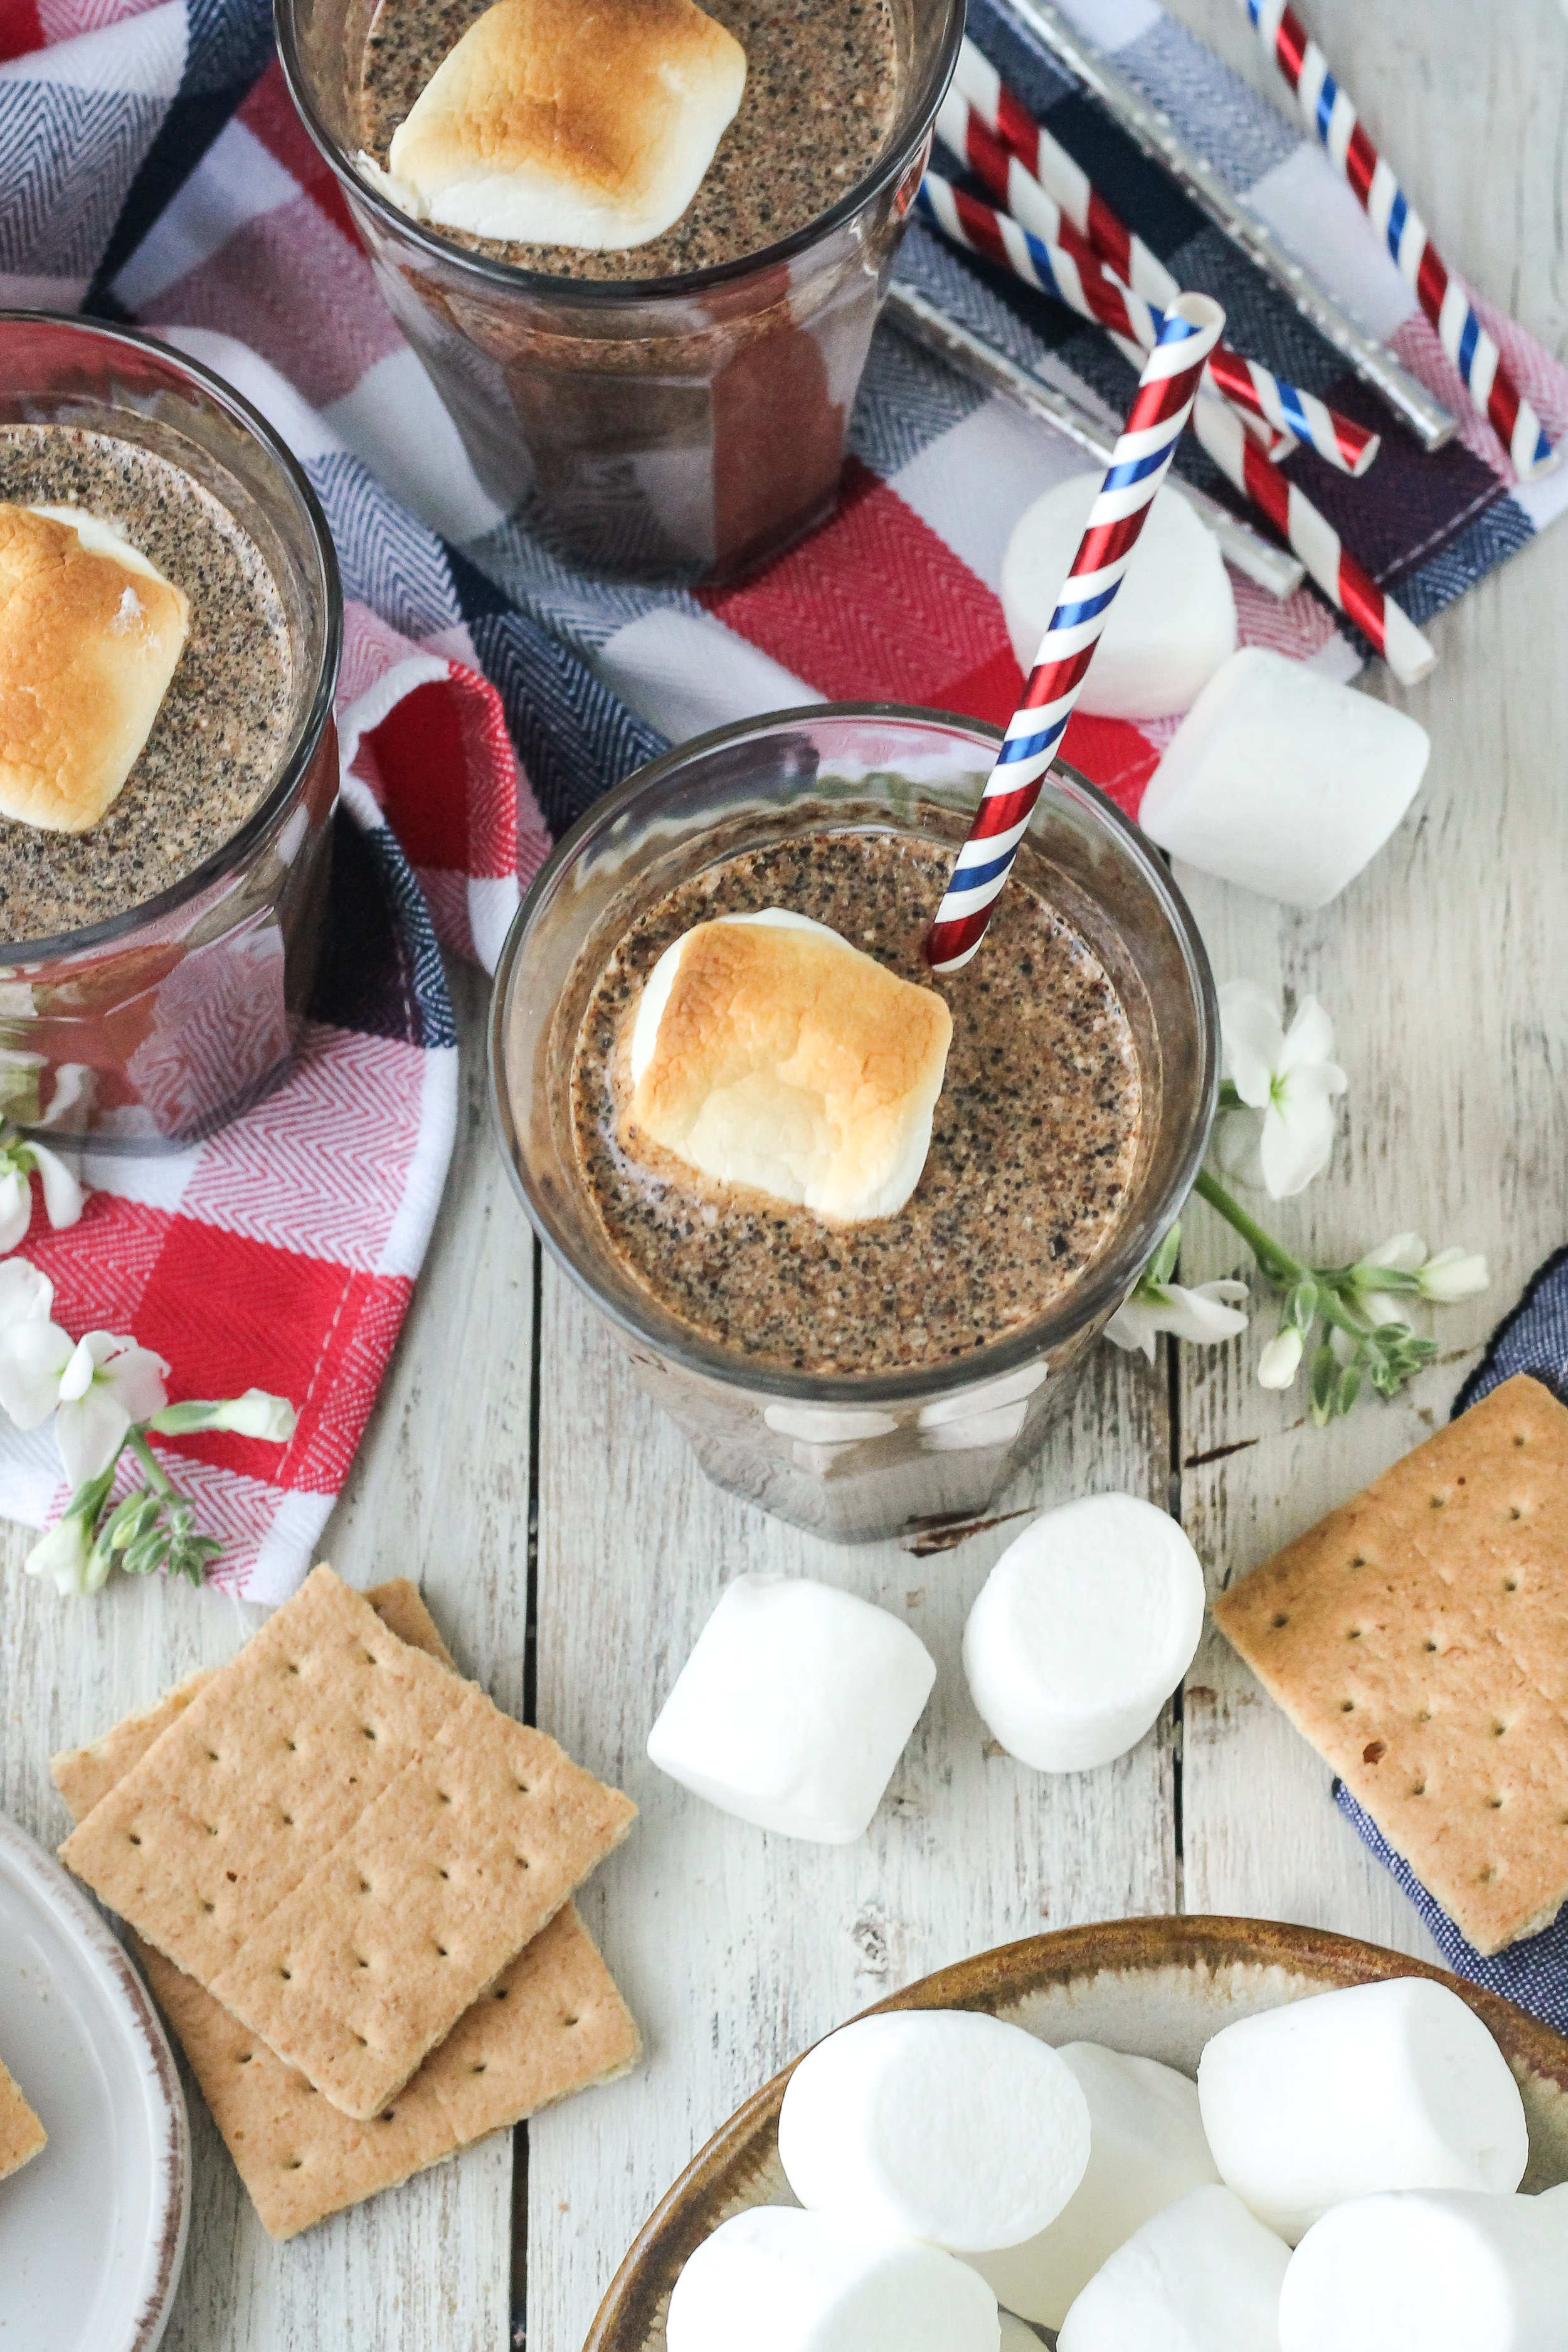 When the s'mores cravings are strong but there isn't a campfire in sight, s'mores milkshakes are the perfect solution! Find the super simple 5-ingredient recipe on WWW.PEDANTICFOODIE.COM!